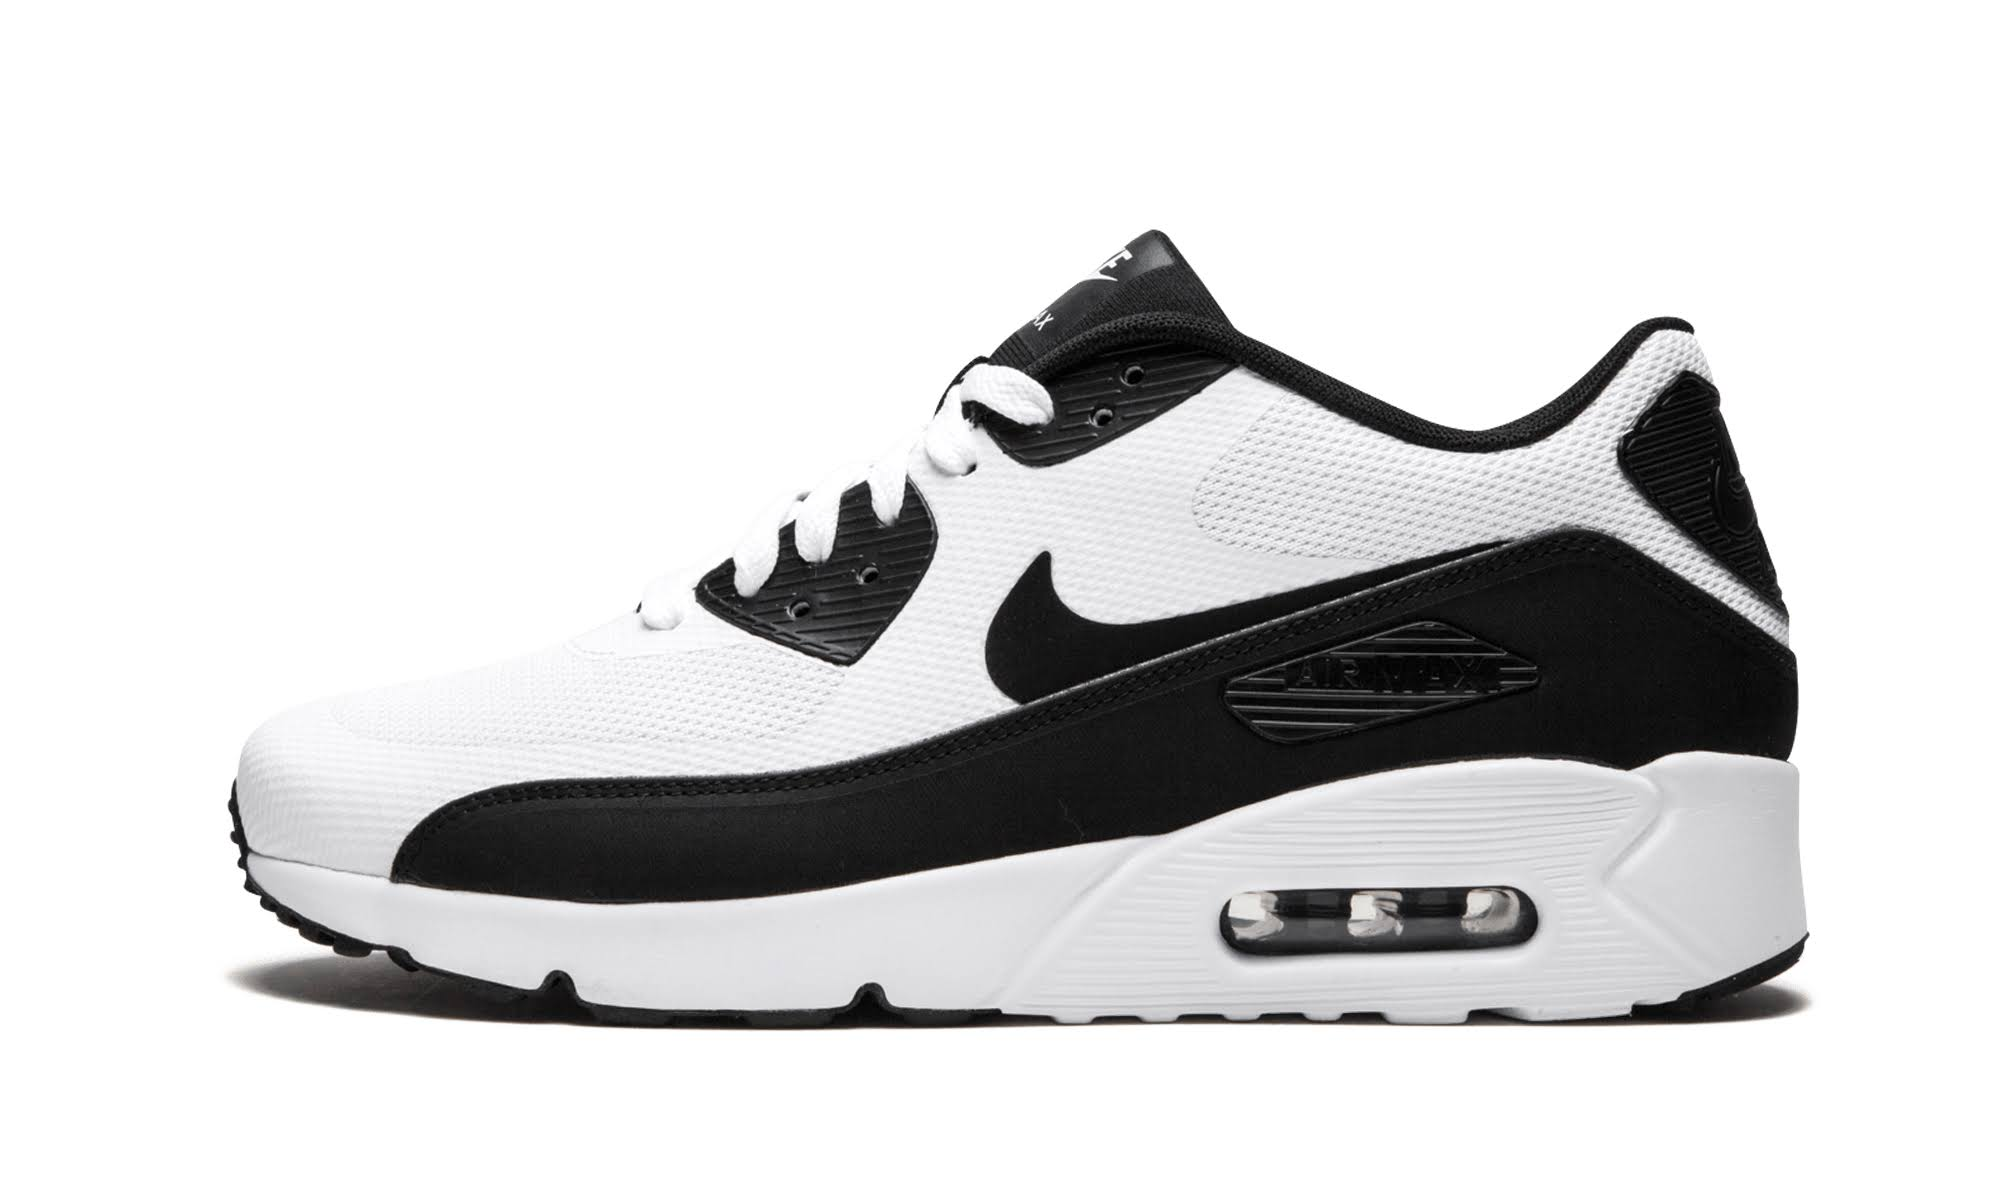 0 20 Nike Ultra Air Max 875695100 Schuhe 15 Essential 90 wwOpSxqgzv